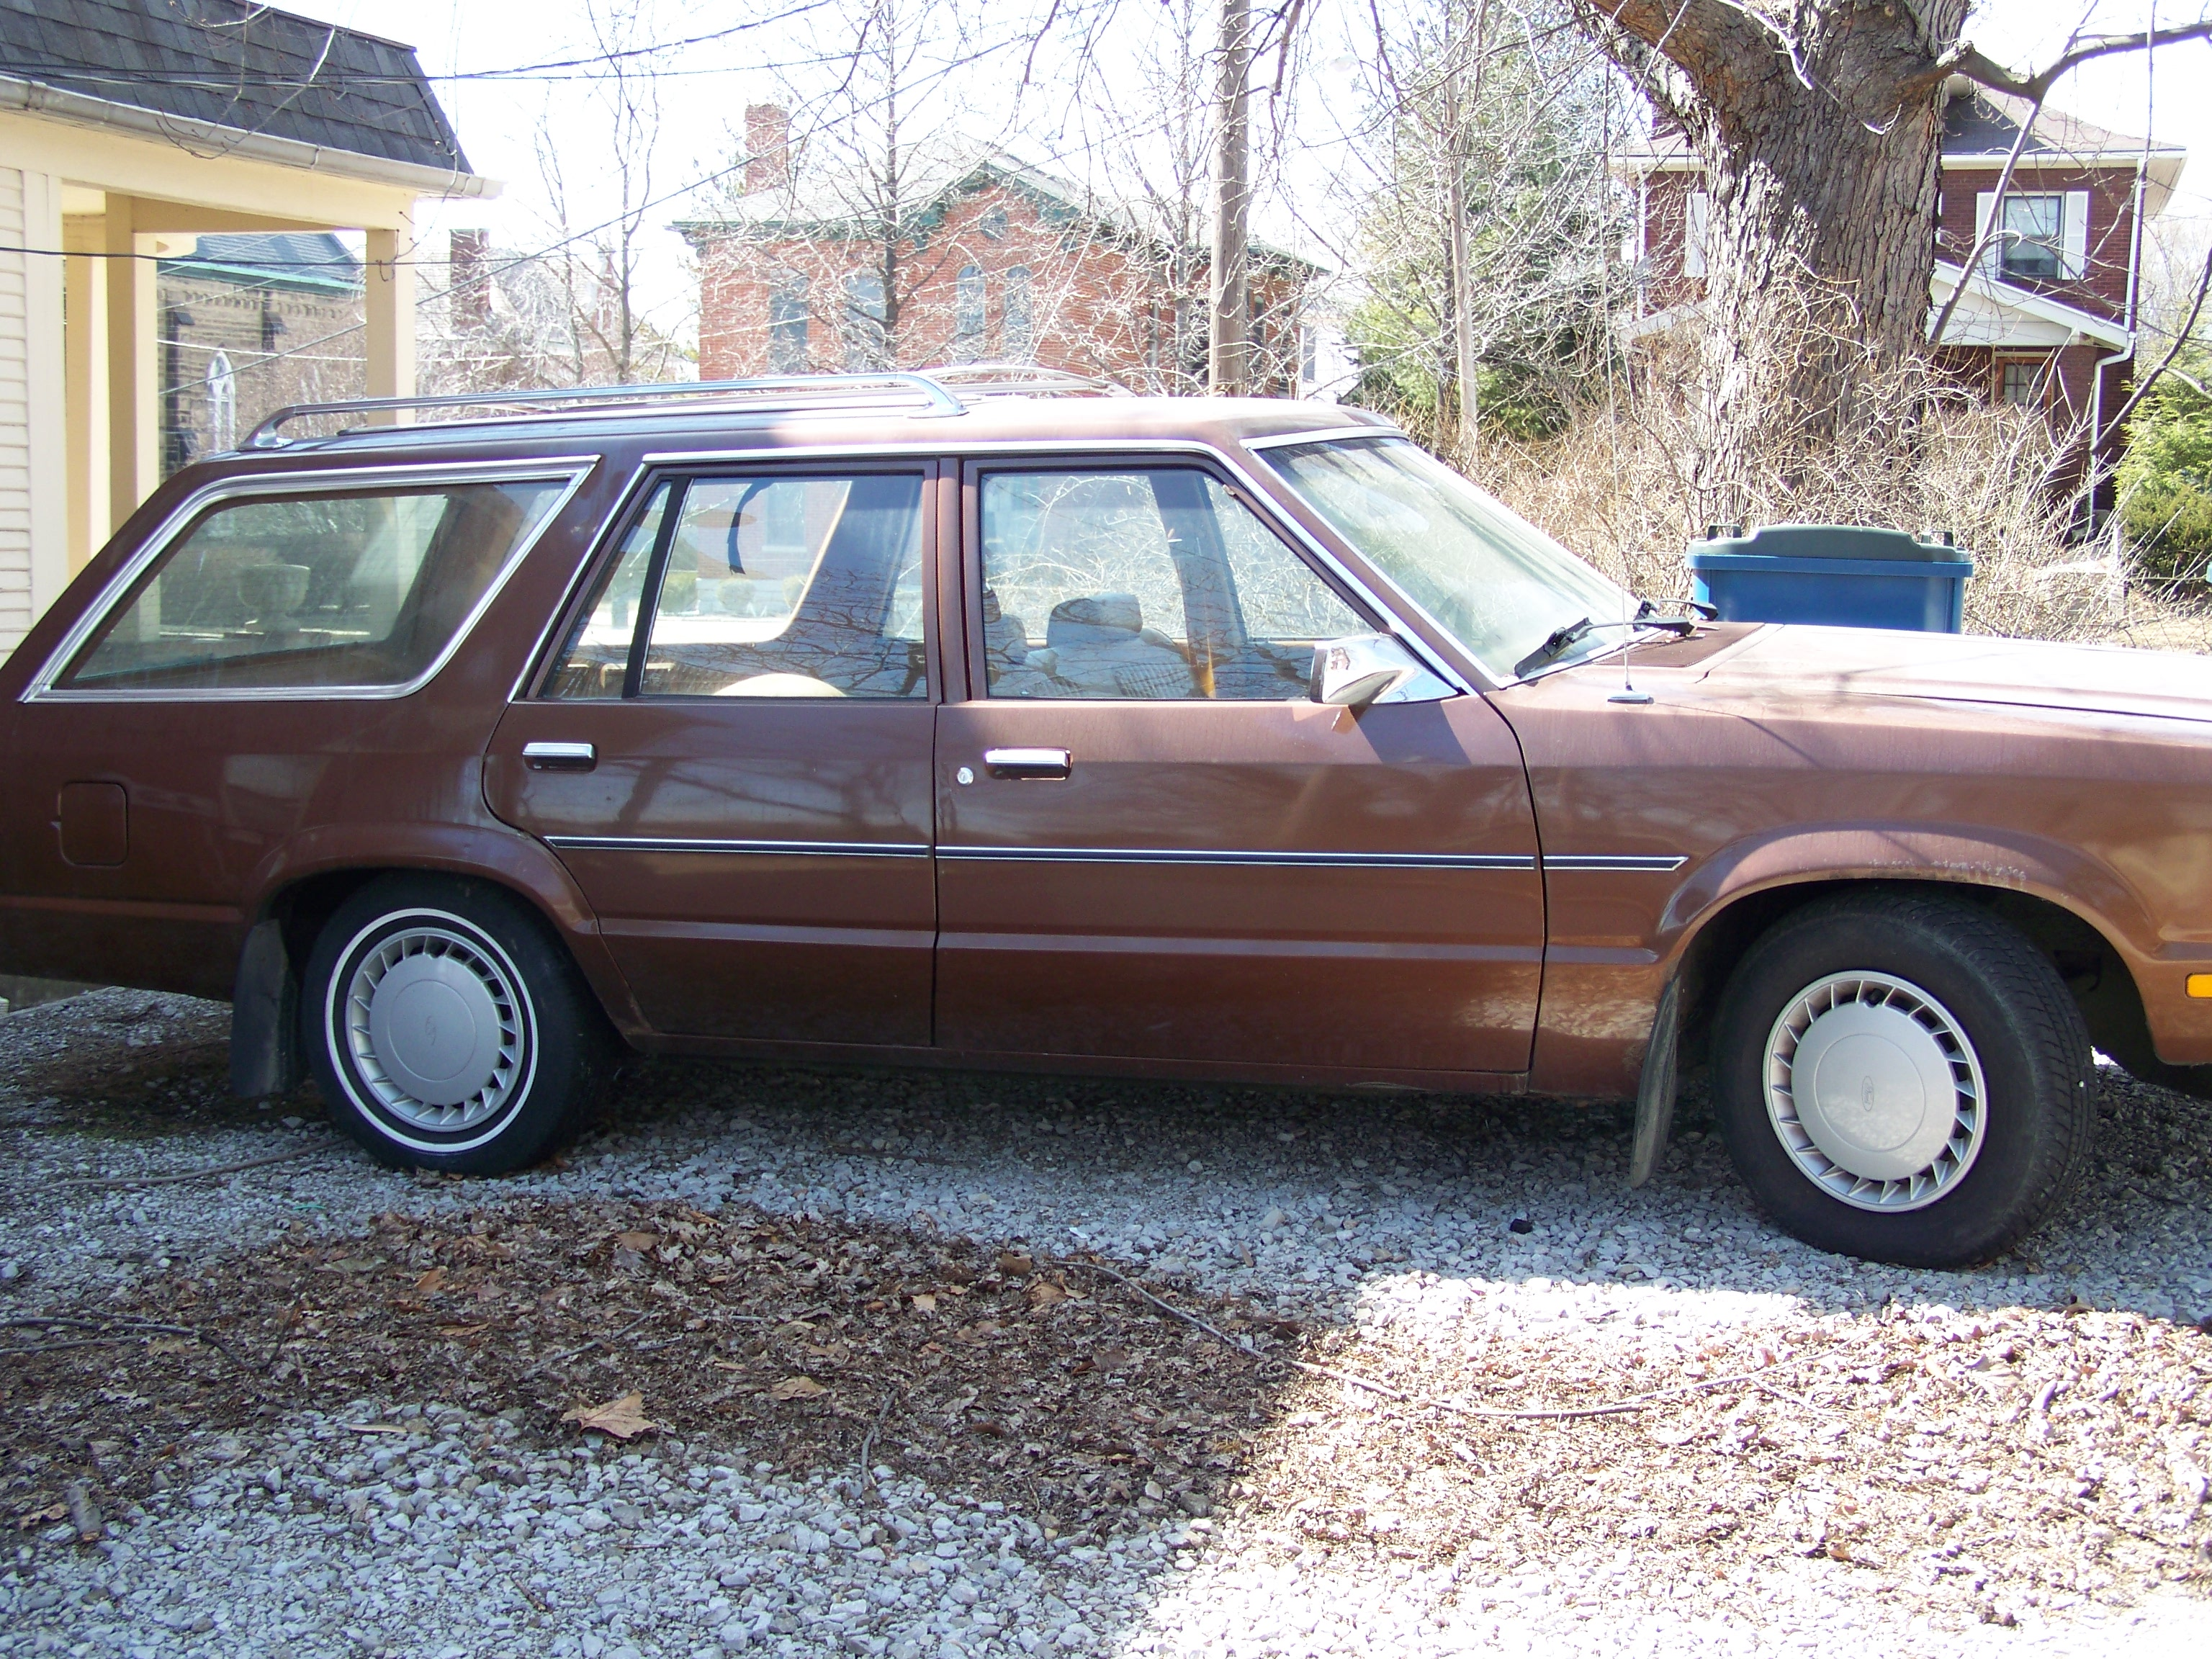 Cash for Cars Charlotte, NC | Sell Your Junk Car | The Clunker Junker